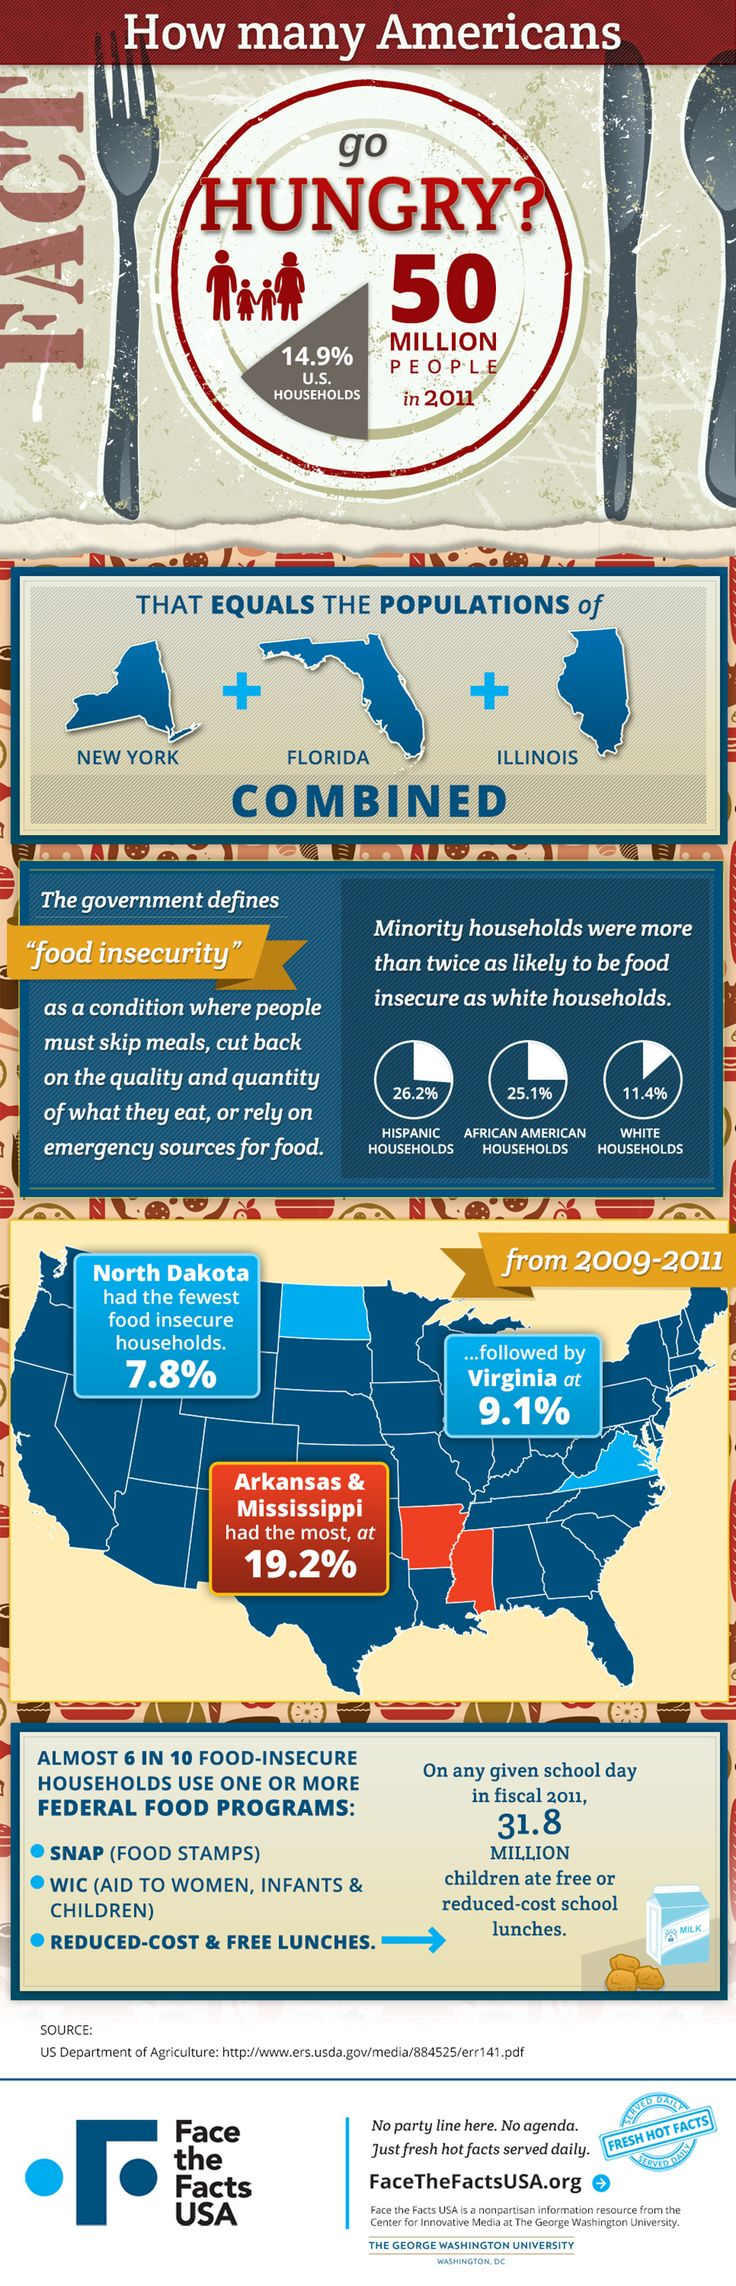 How many Americans go hungry? - Food insecurity – it runs deeper than you may think. #hunger #foodbank